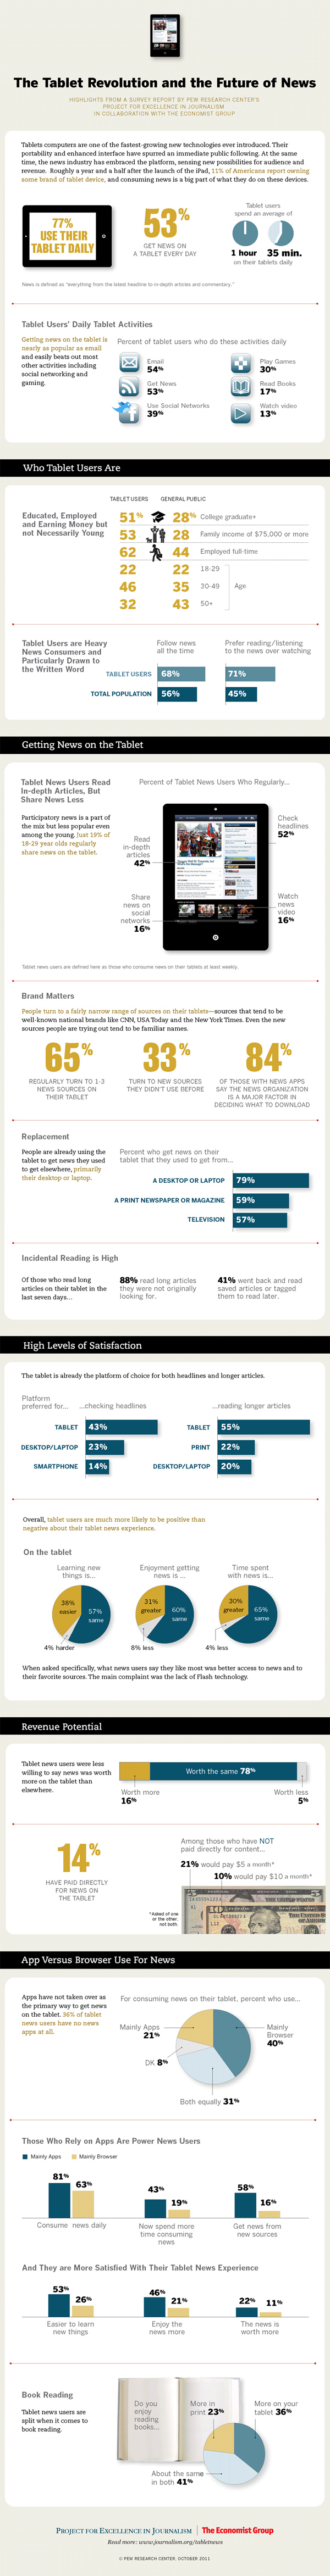 Infographic from Pew Research Center on how tablets are changing consumer behaviour